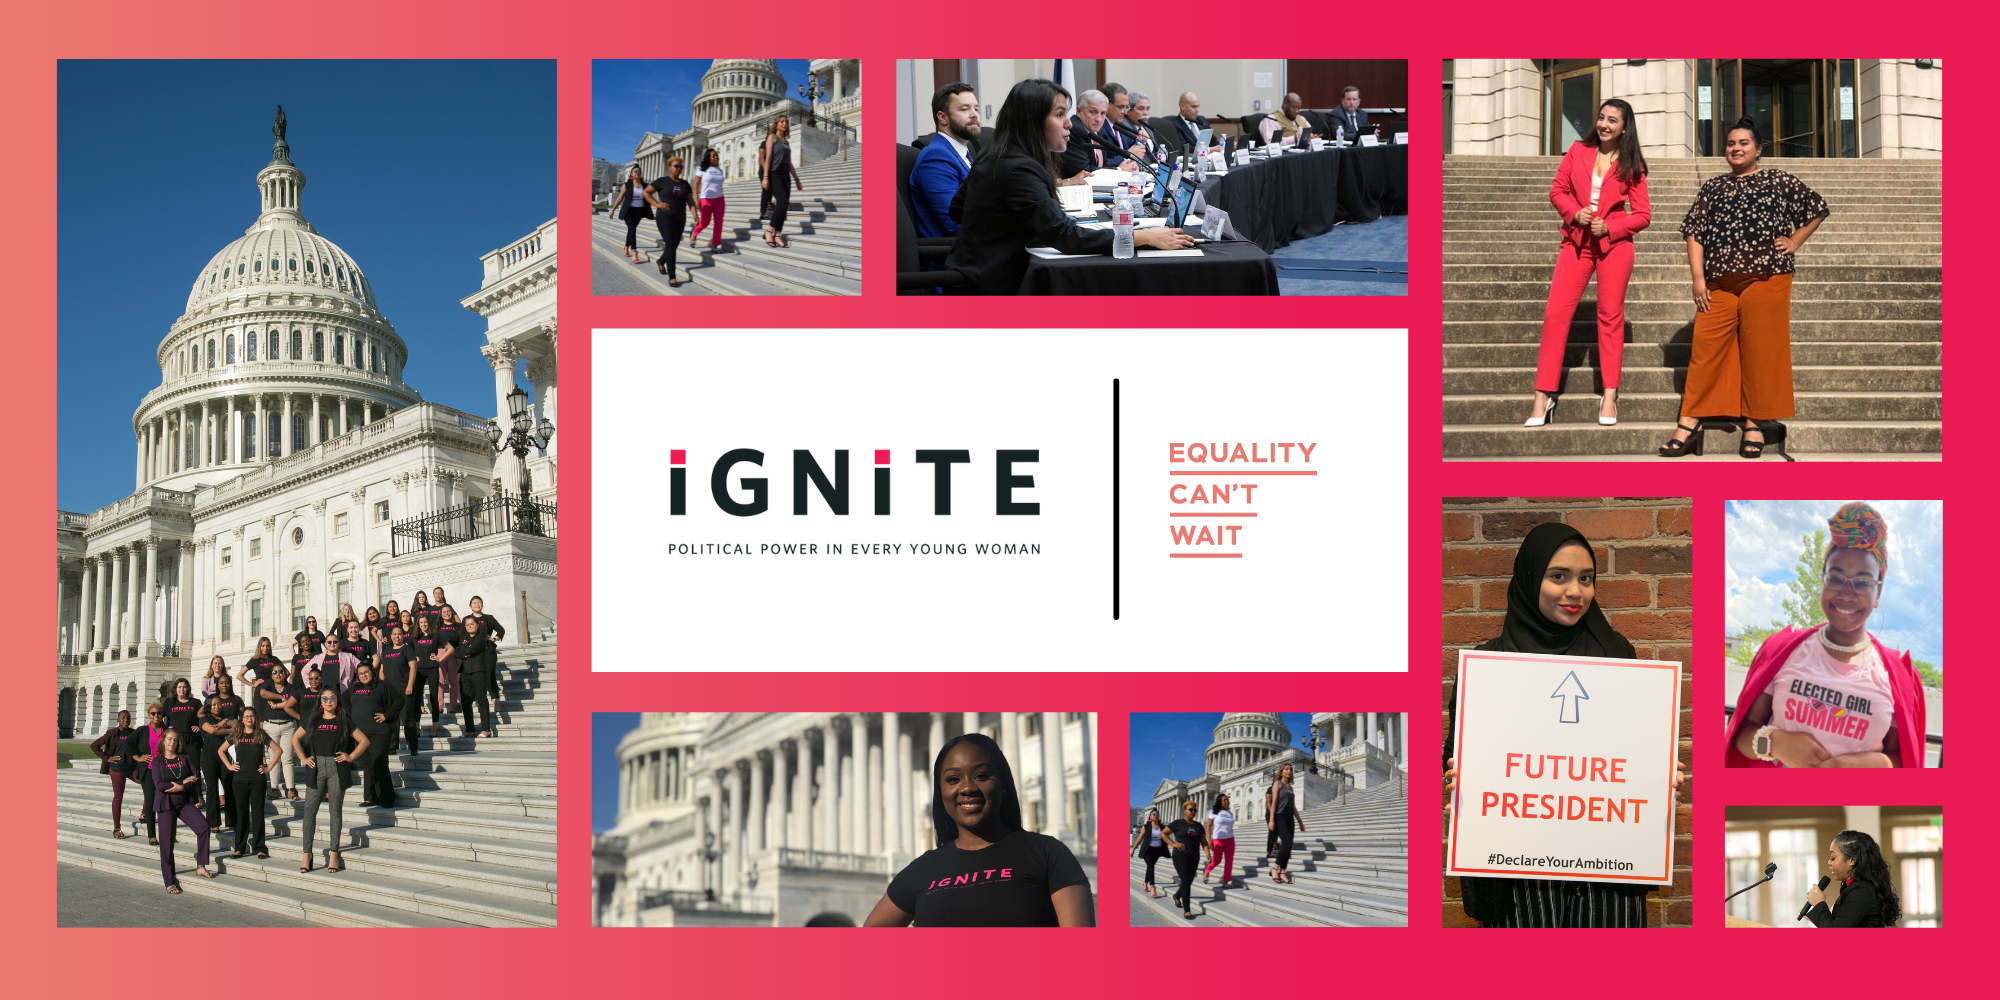 IGNITE named as Equality Can't Wait Challenge award recipient